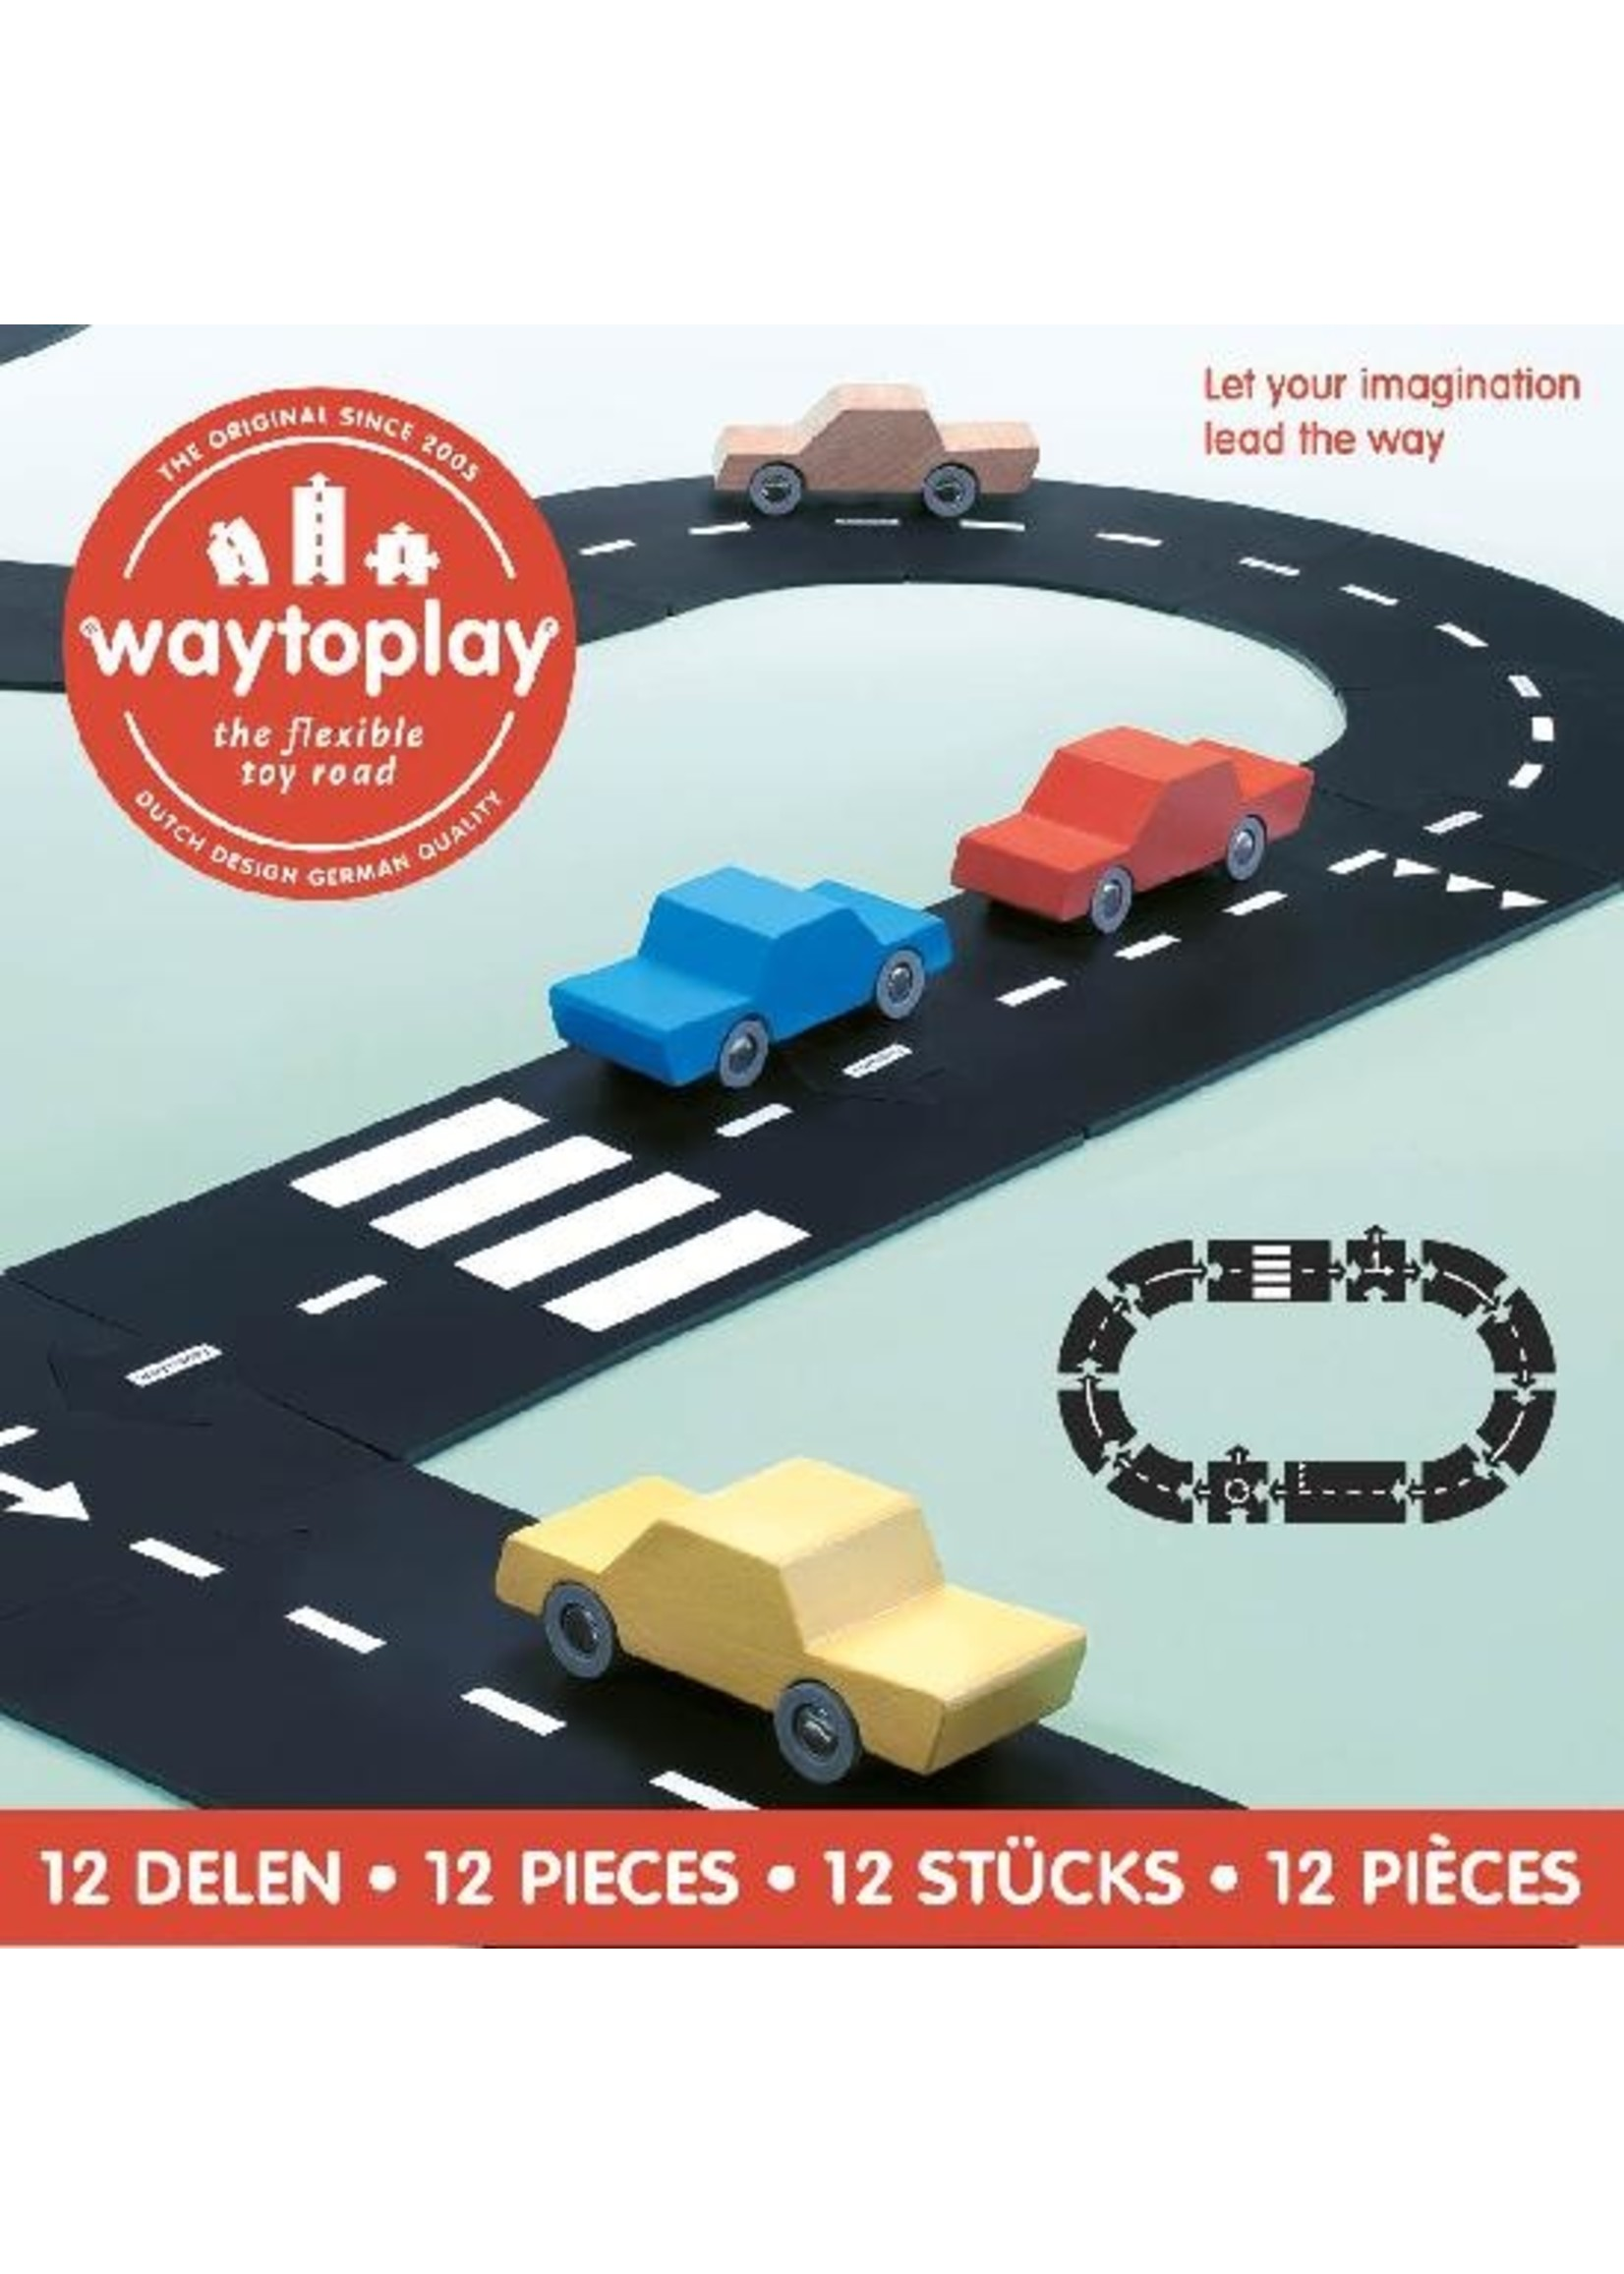 Way to play Route flexible Way to play 12 pièces